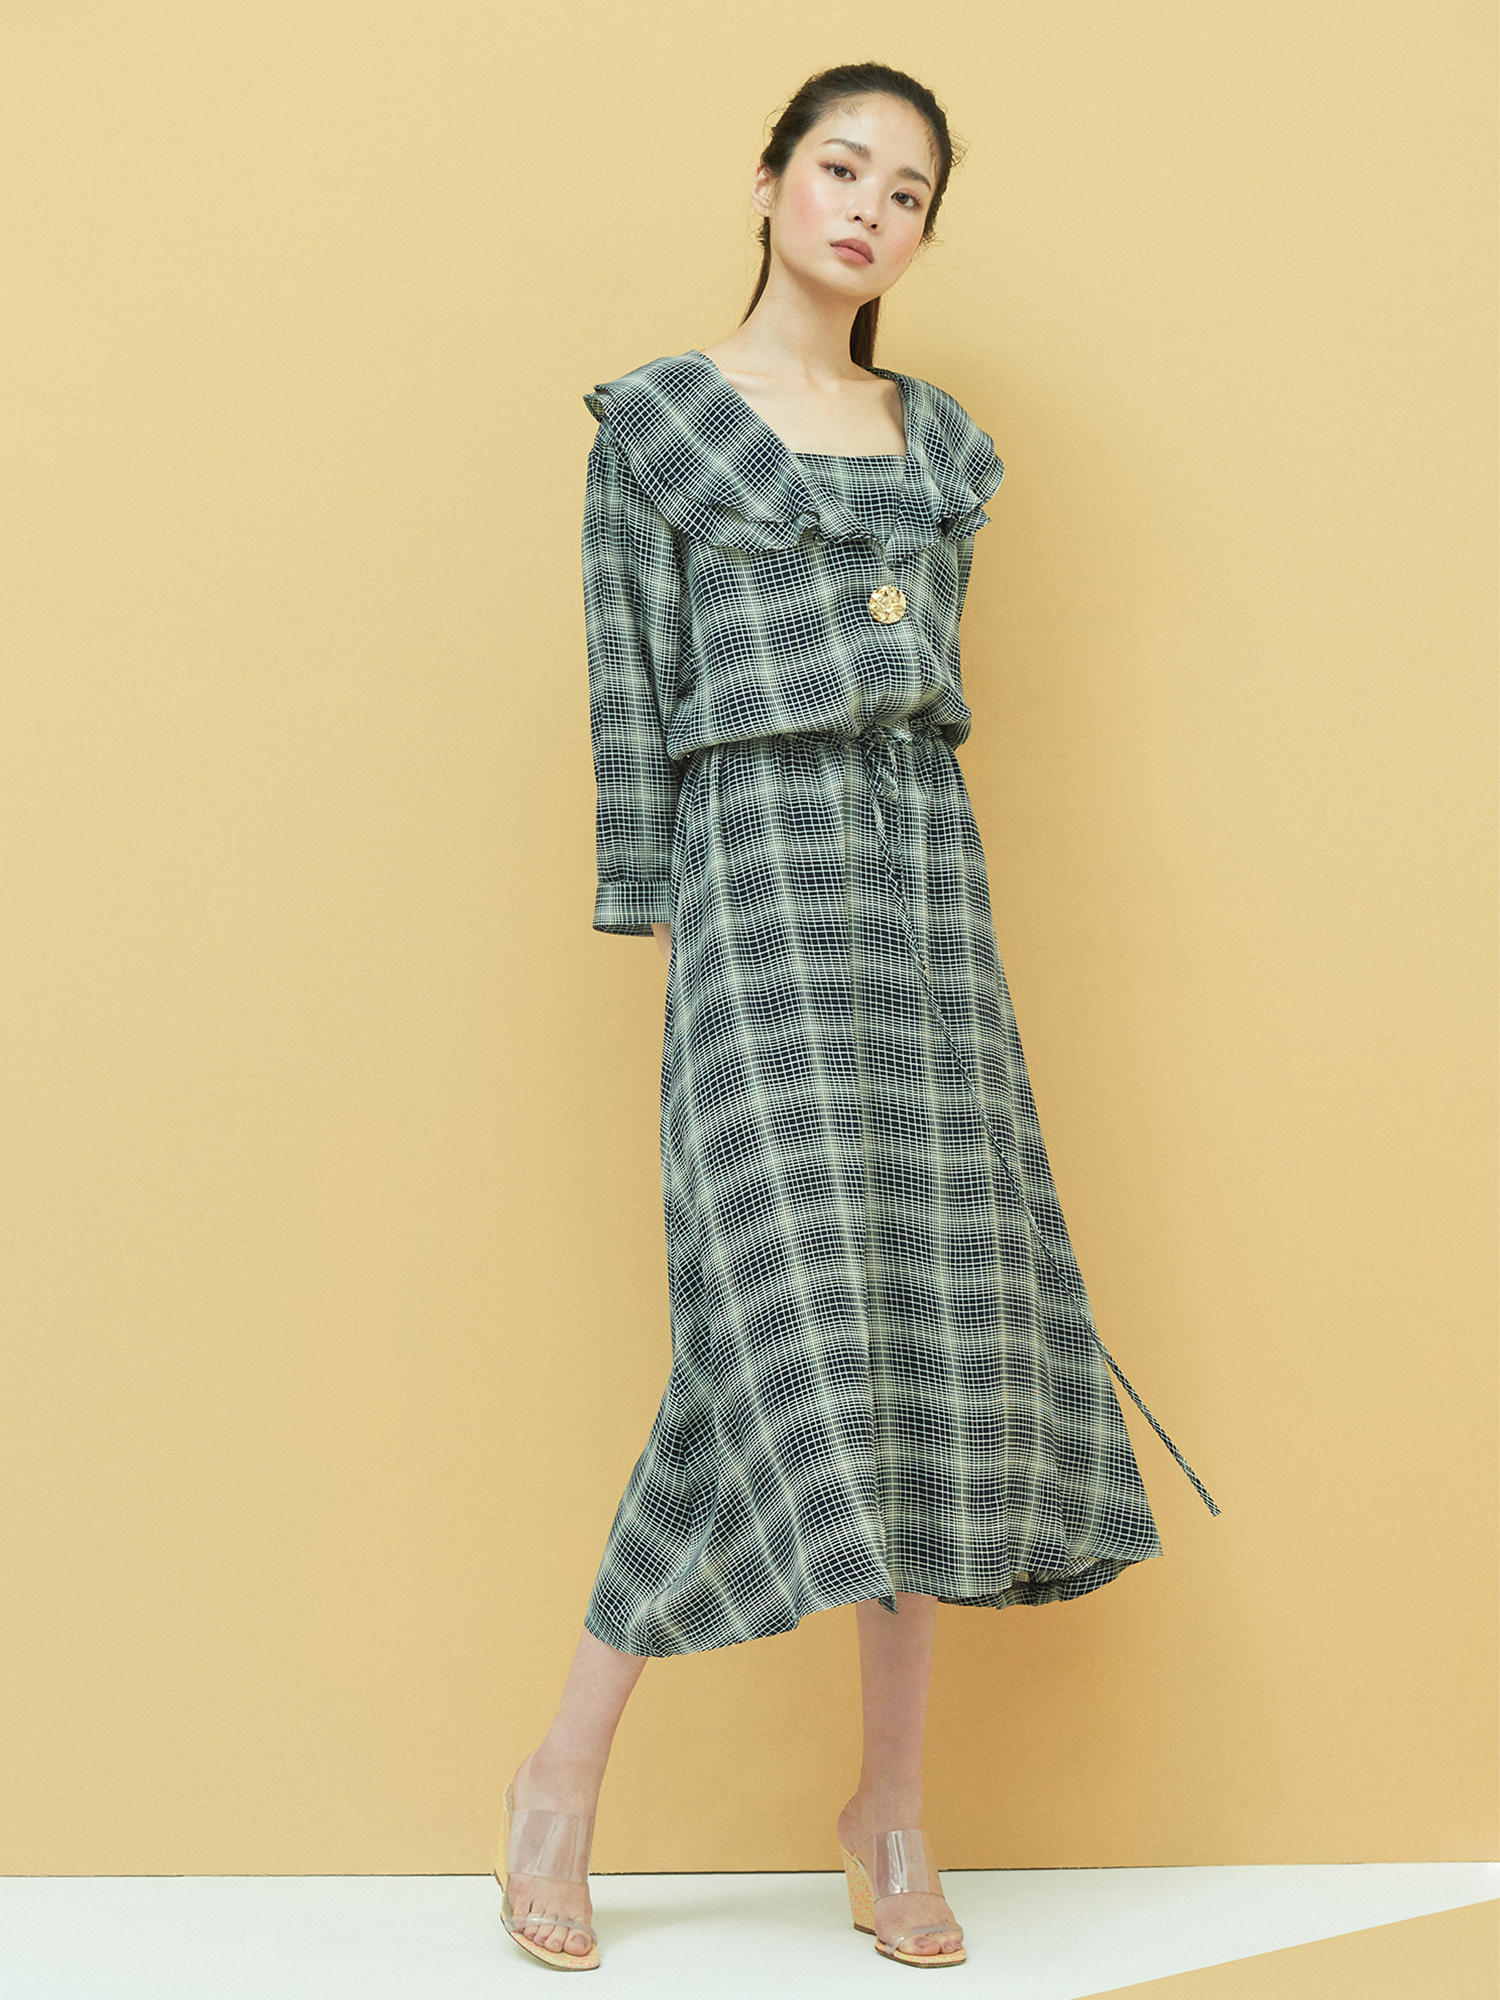 [6/4 예약배송] Retro Frill Dress in Navy